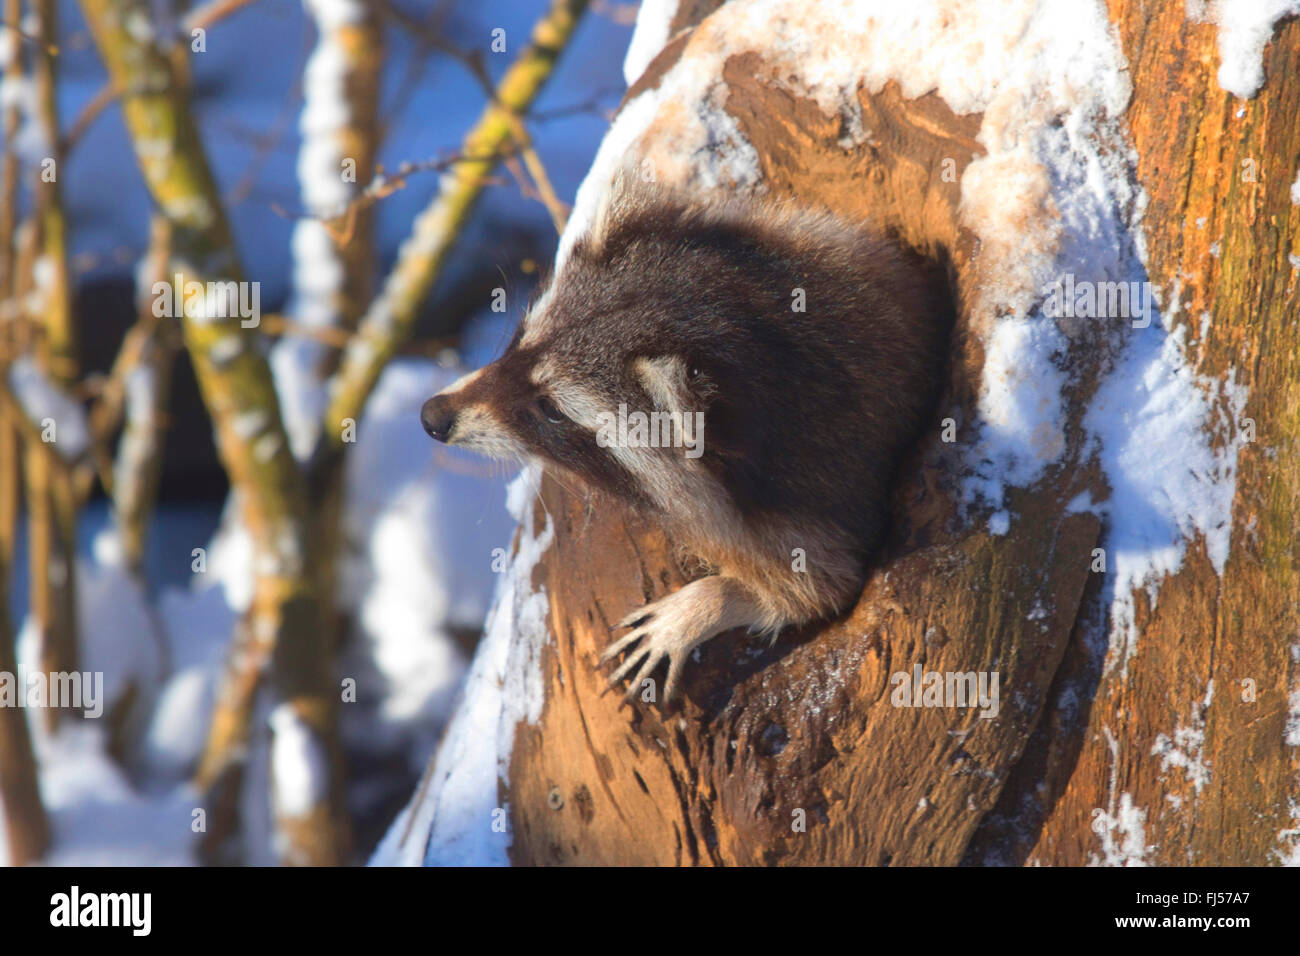 common raccoon (Procyon lotor), looking out a tree hole in winter, Germany, North Rhine-Westphalia - Stock Image